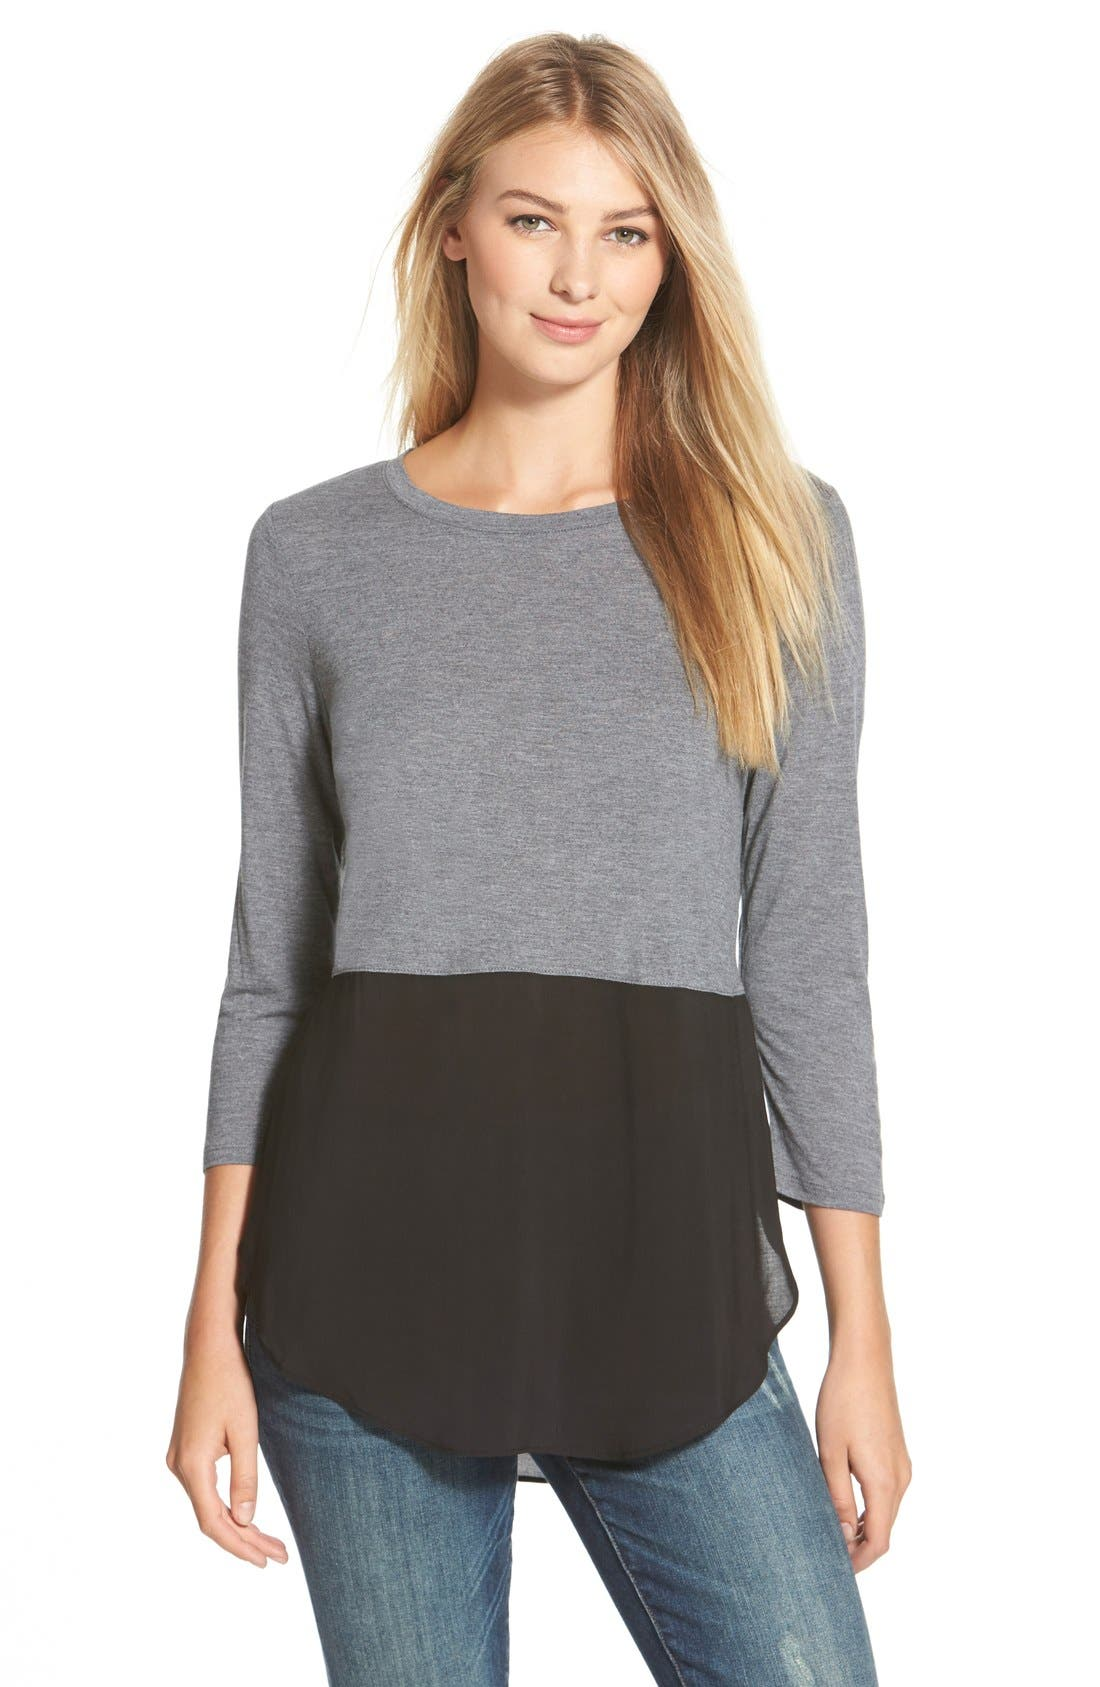 Main Image - Two by Vince Camuto Mixed Media Jewel Neck Tunic